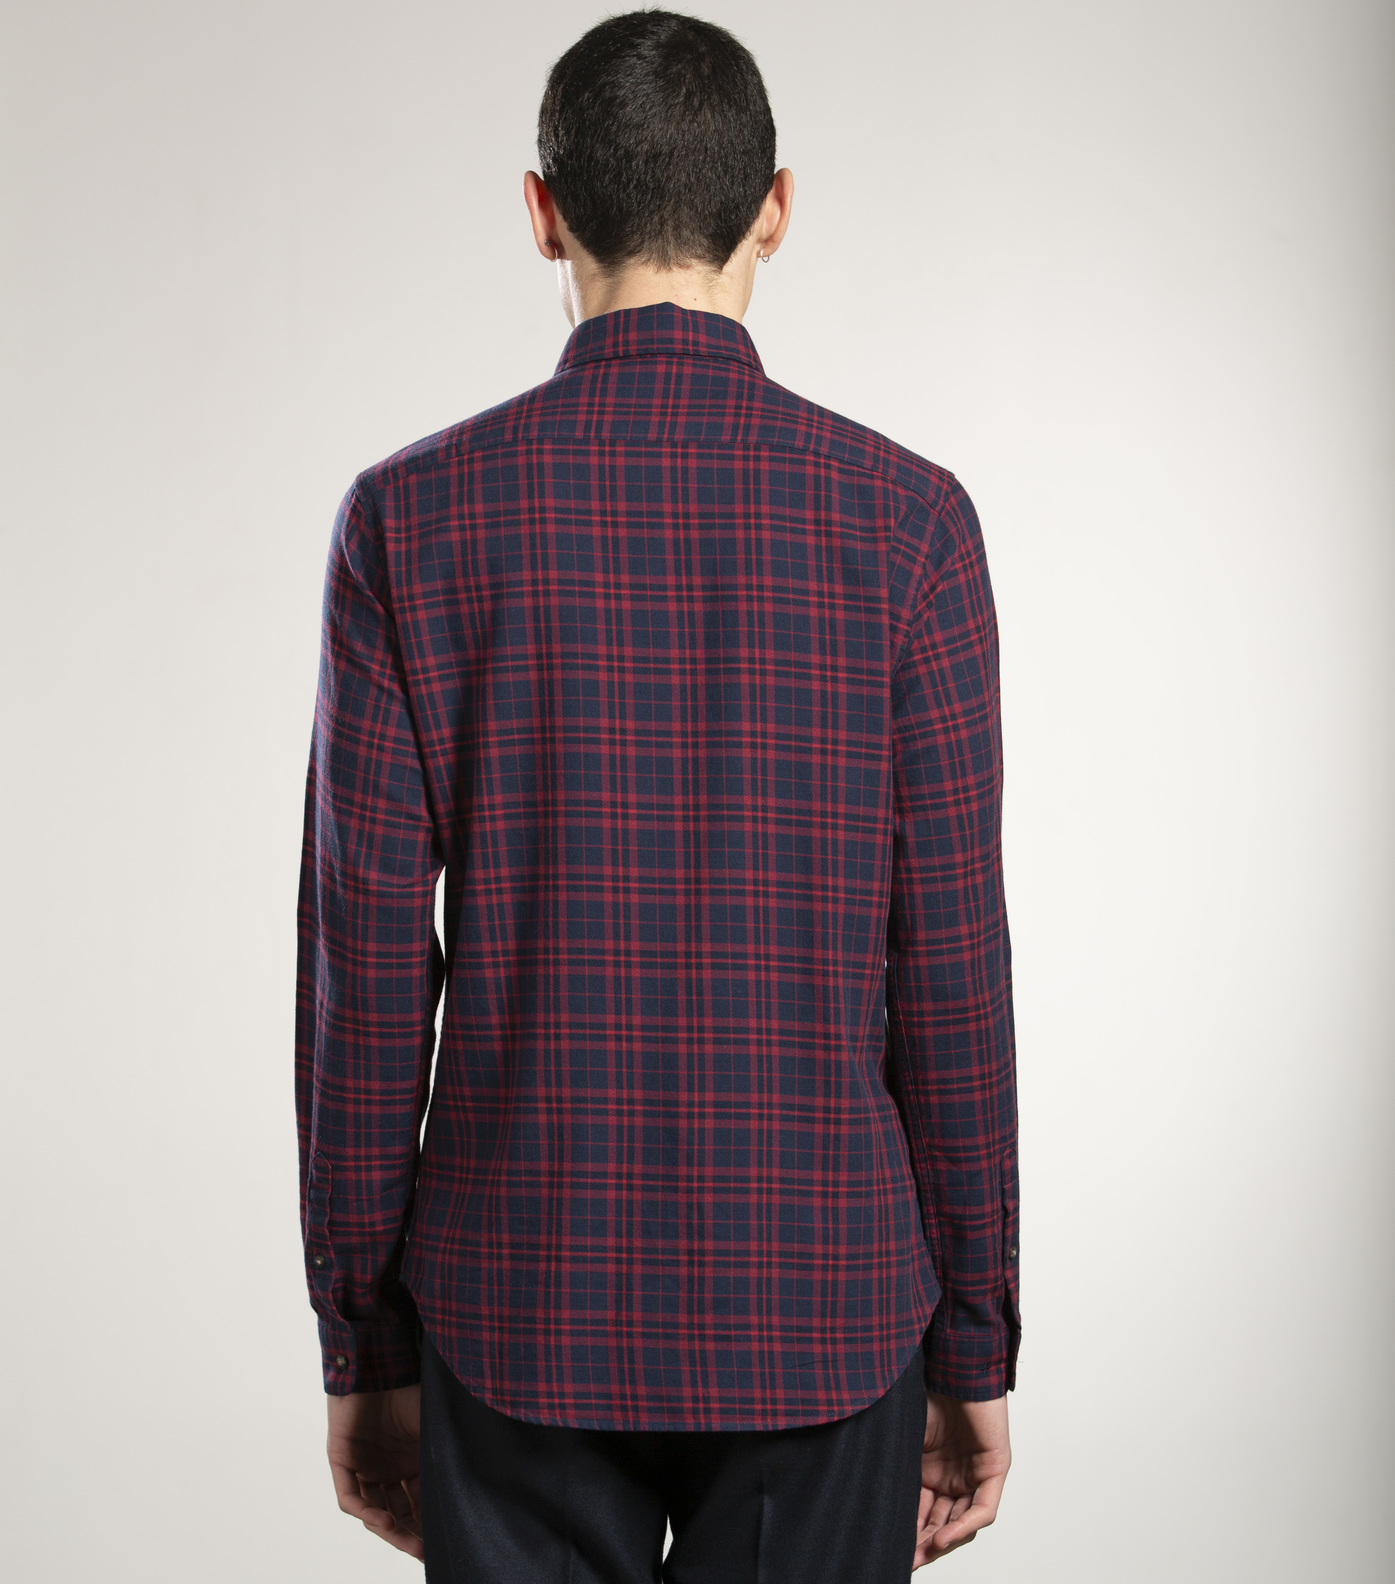 SHIRT ROSSEL - Red checks